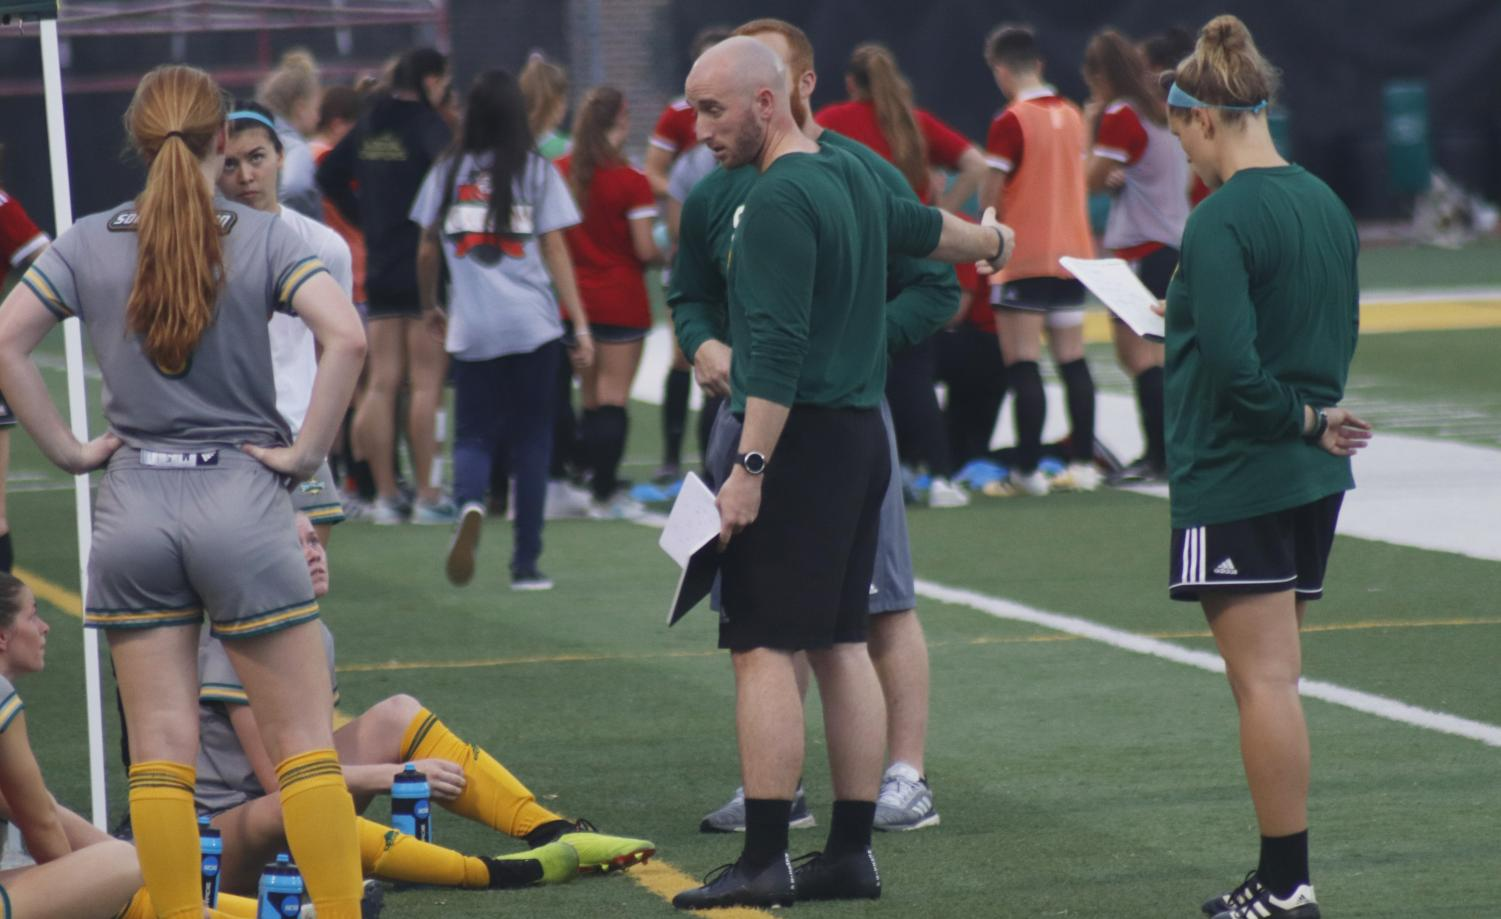 Christopher McBride, head coach of soccer, talks to his players before a game. McBride coached the Lady Lions to a 7-7-4 record in the 2018 season.  McBride is a native of Scotland, and he learned the fundamentals of soccer from his father.